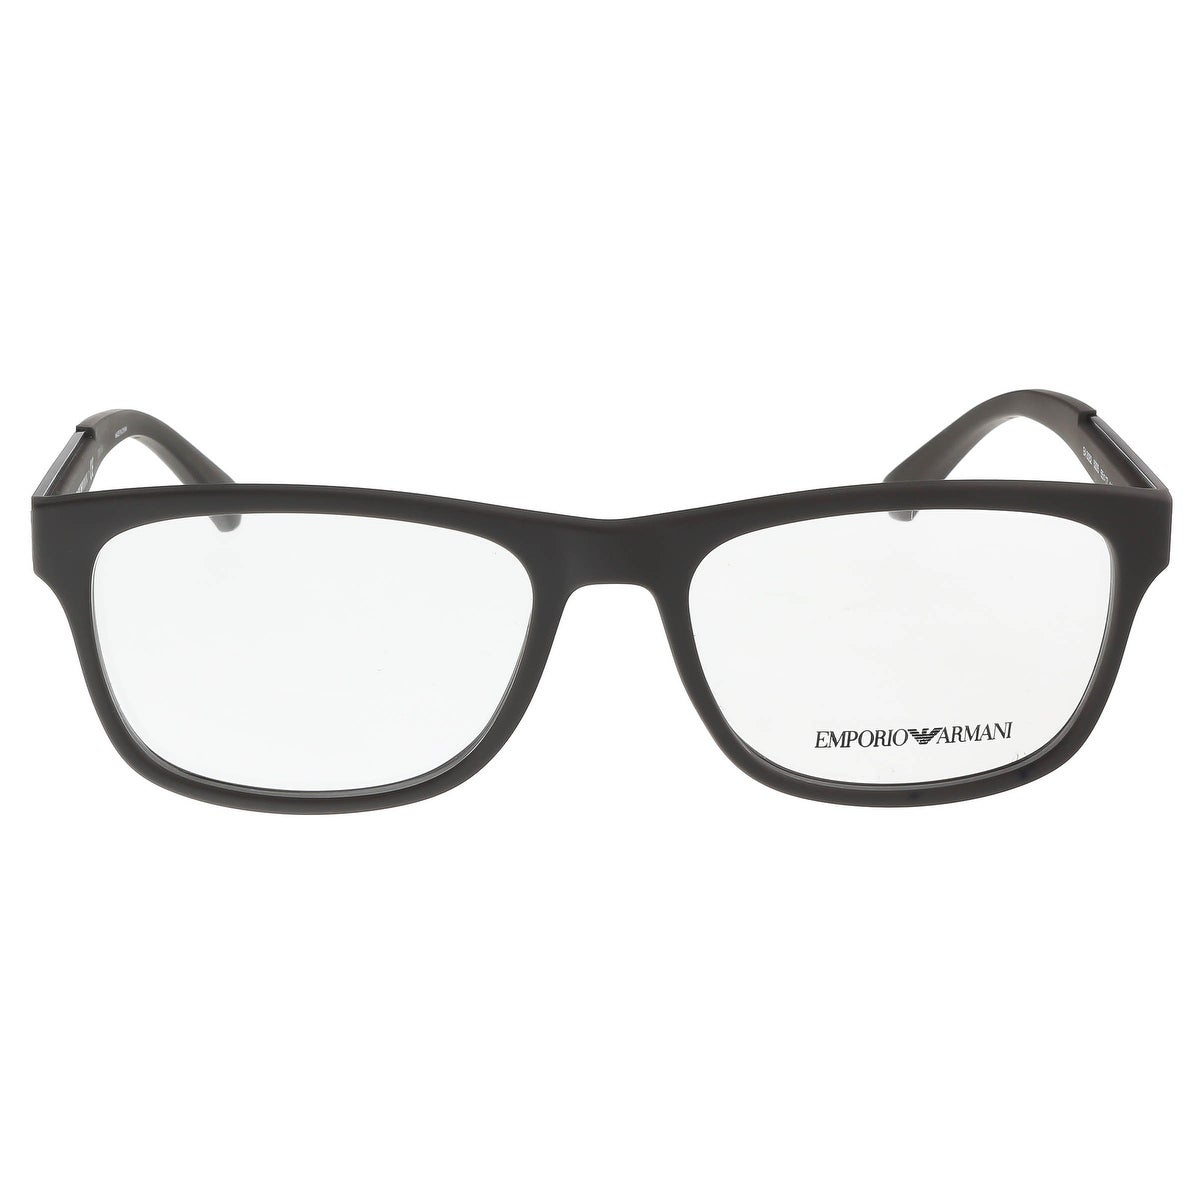 b030ee25f42 Shop Emporio Armani EA3082 5305 Brown Rubber Rectangle Optical Frames -  55-17-140 - Free Shipping Today - Overstock - 16941502